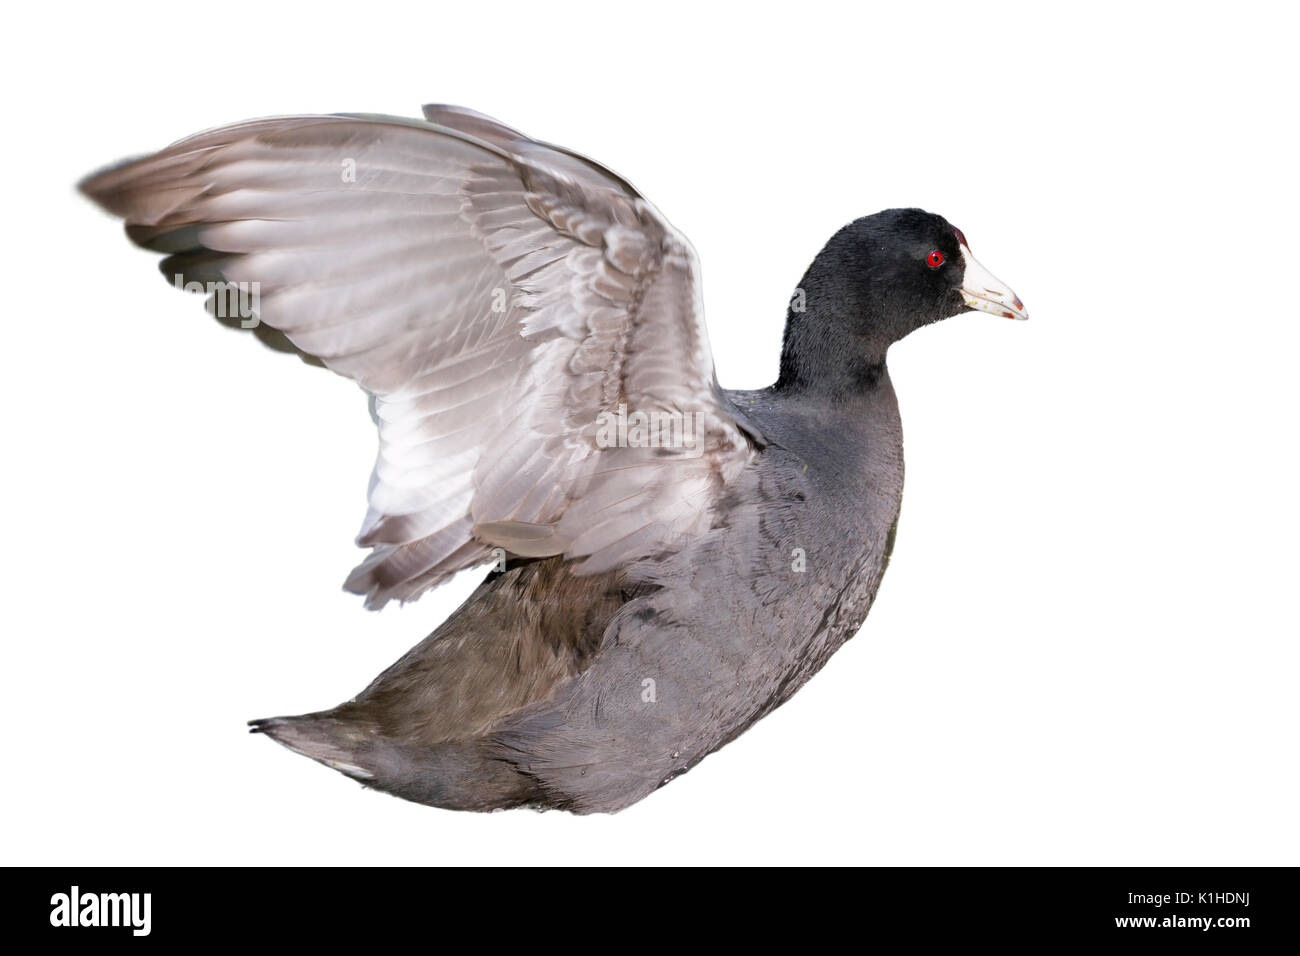 American coot (Fulica americana) streching wings, isolated on white background. - Stock Image